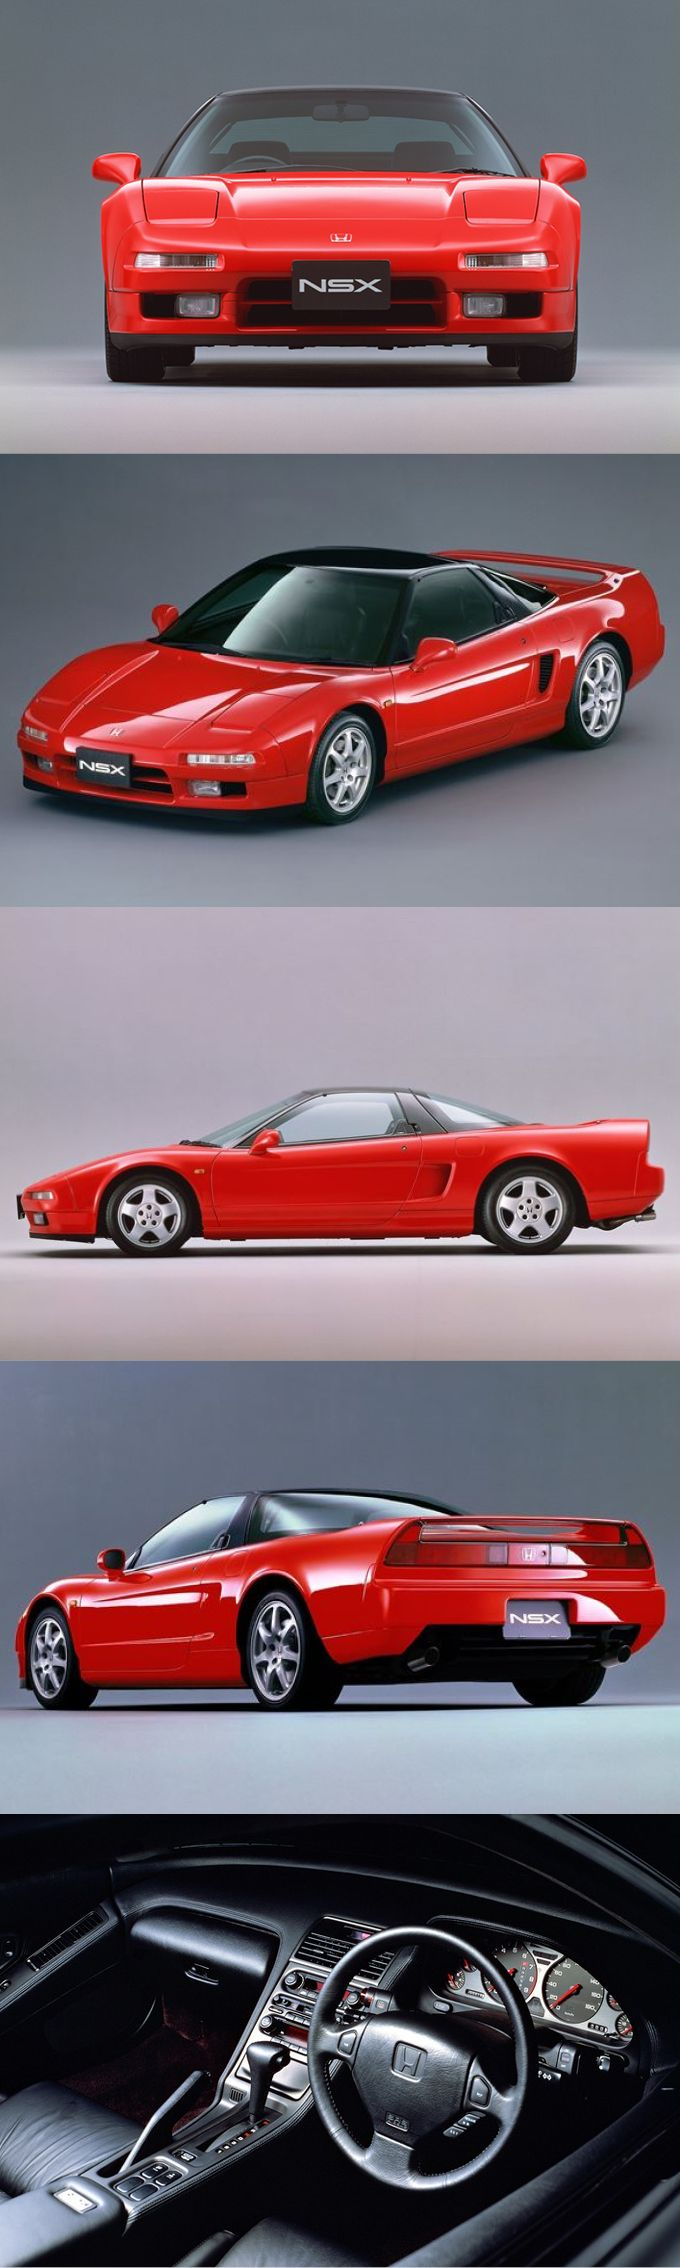 1990 Honda NSX / 290hp / red / Japan / 17-212